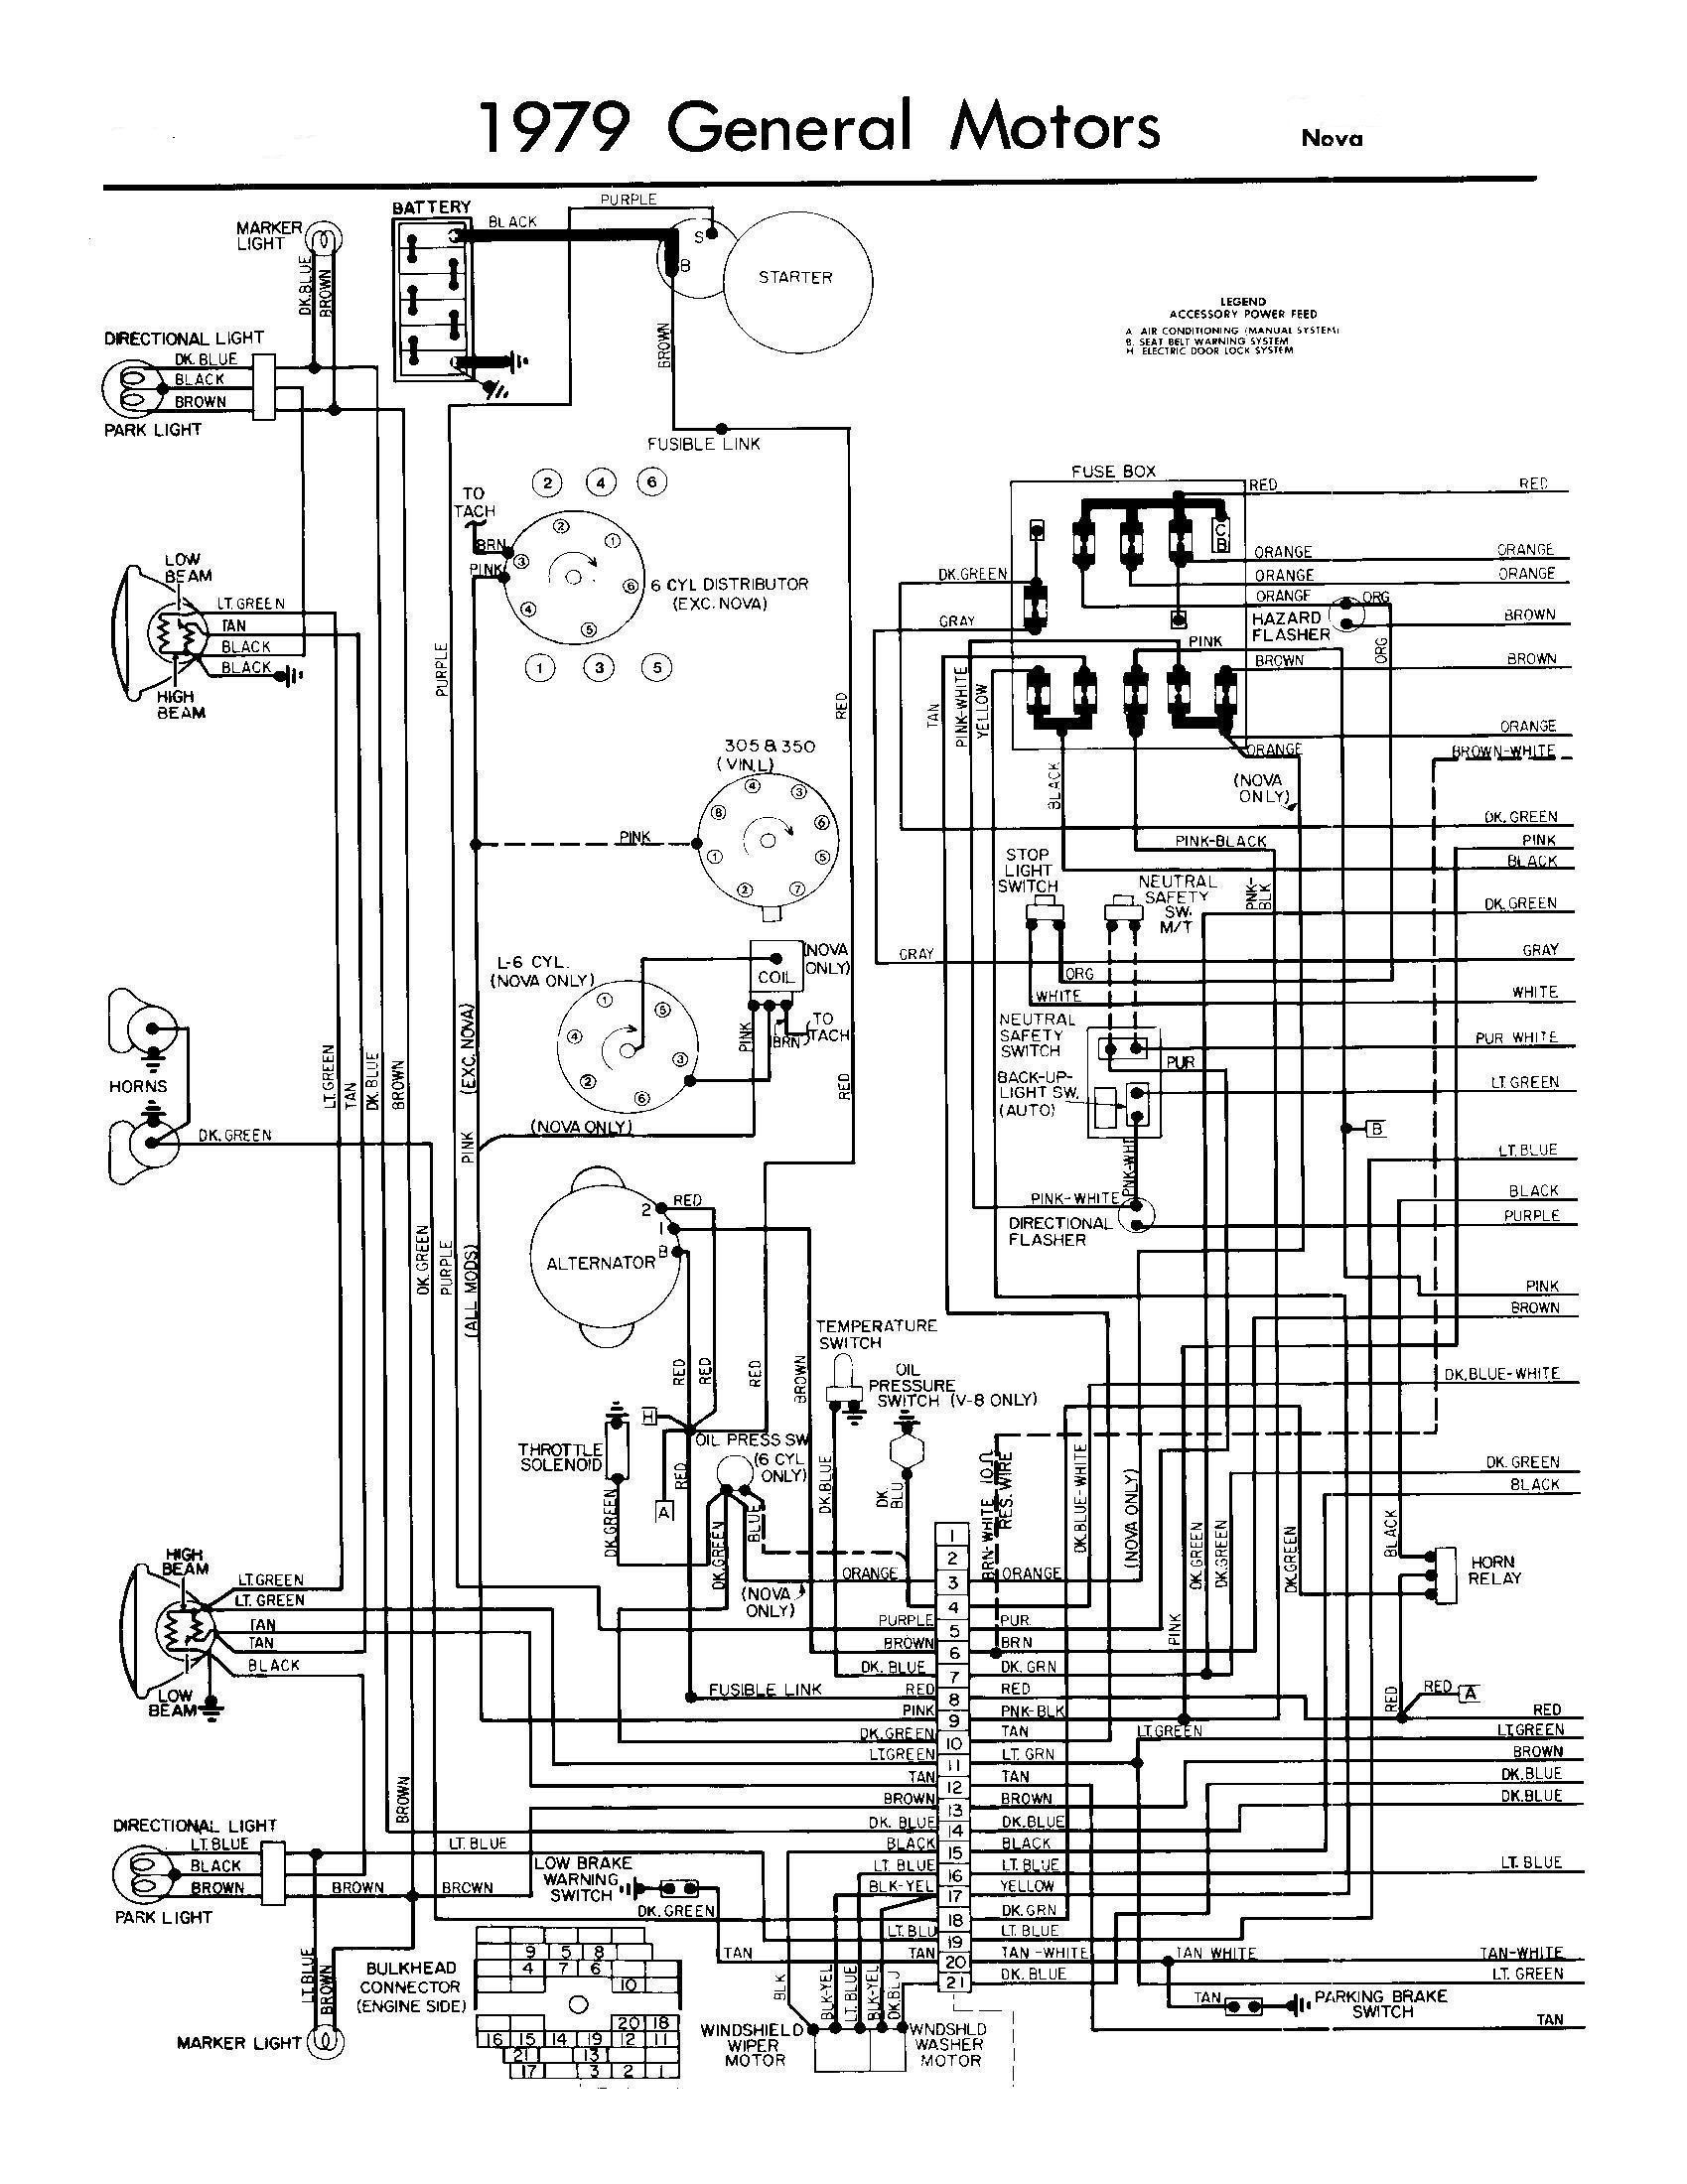 hight resolution of 1980 trans am engine wiring diagram wiring diagram third level rh 18 5 16 jacobwinterstein com 1980 firebird trans am wiring diagram 1981 trans am wiring